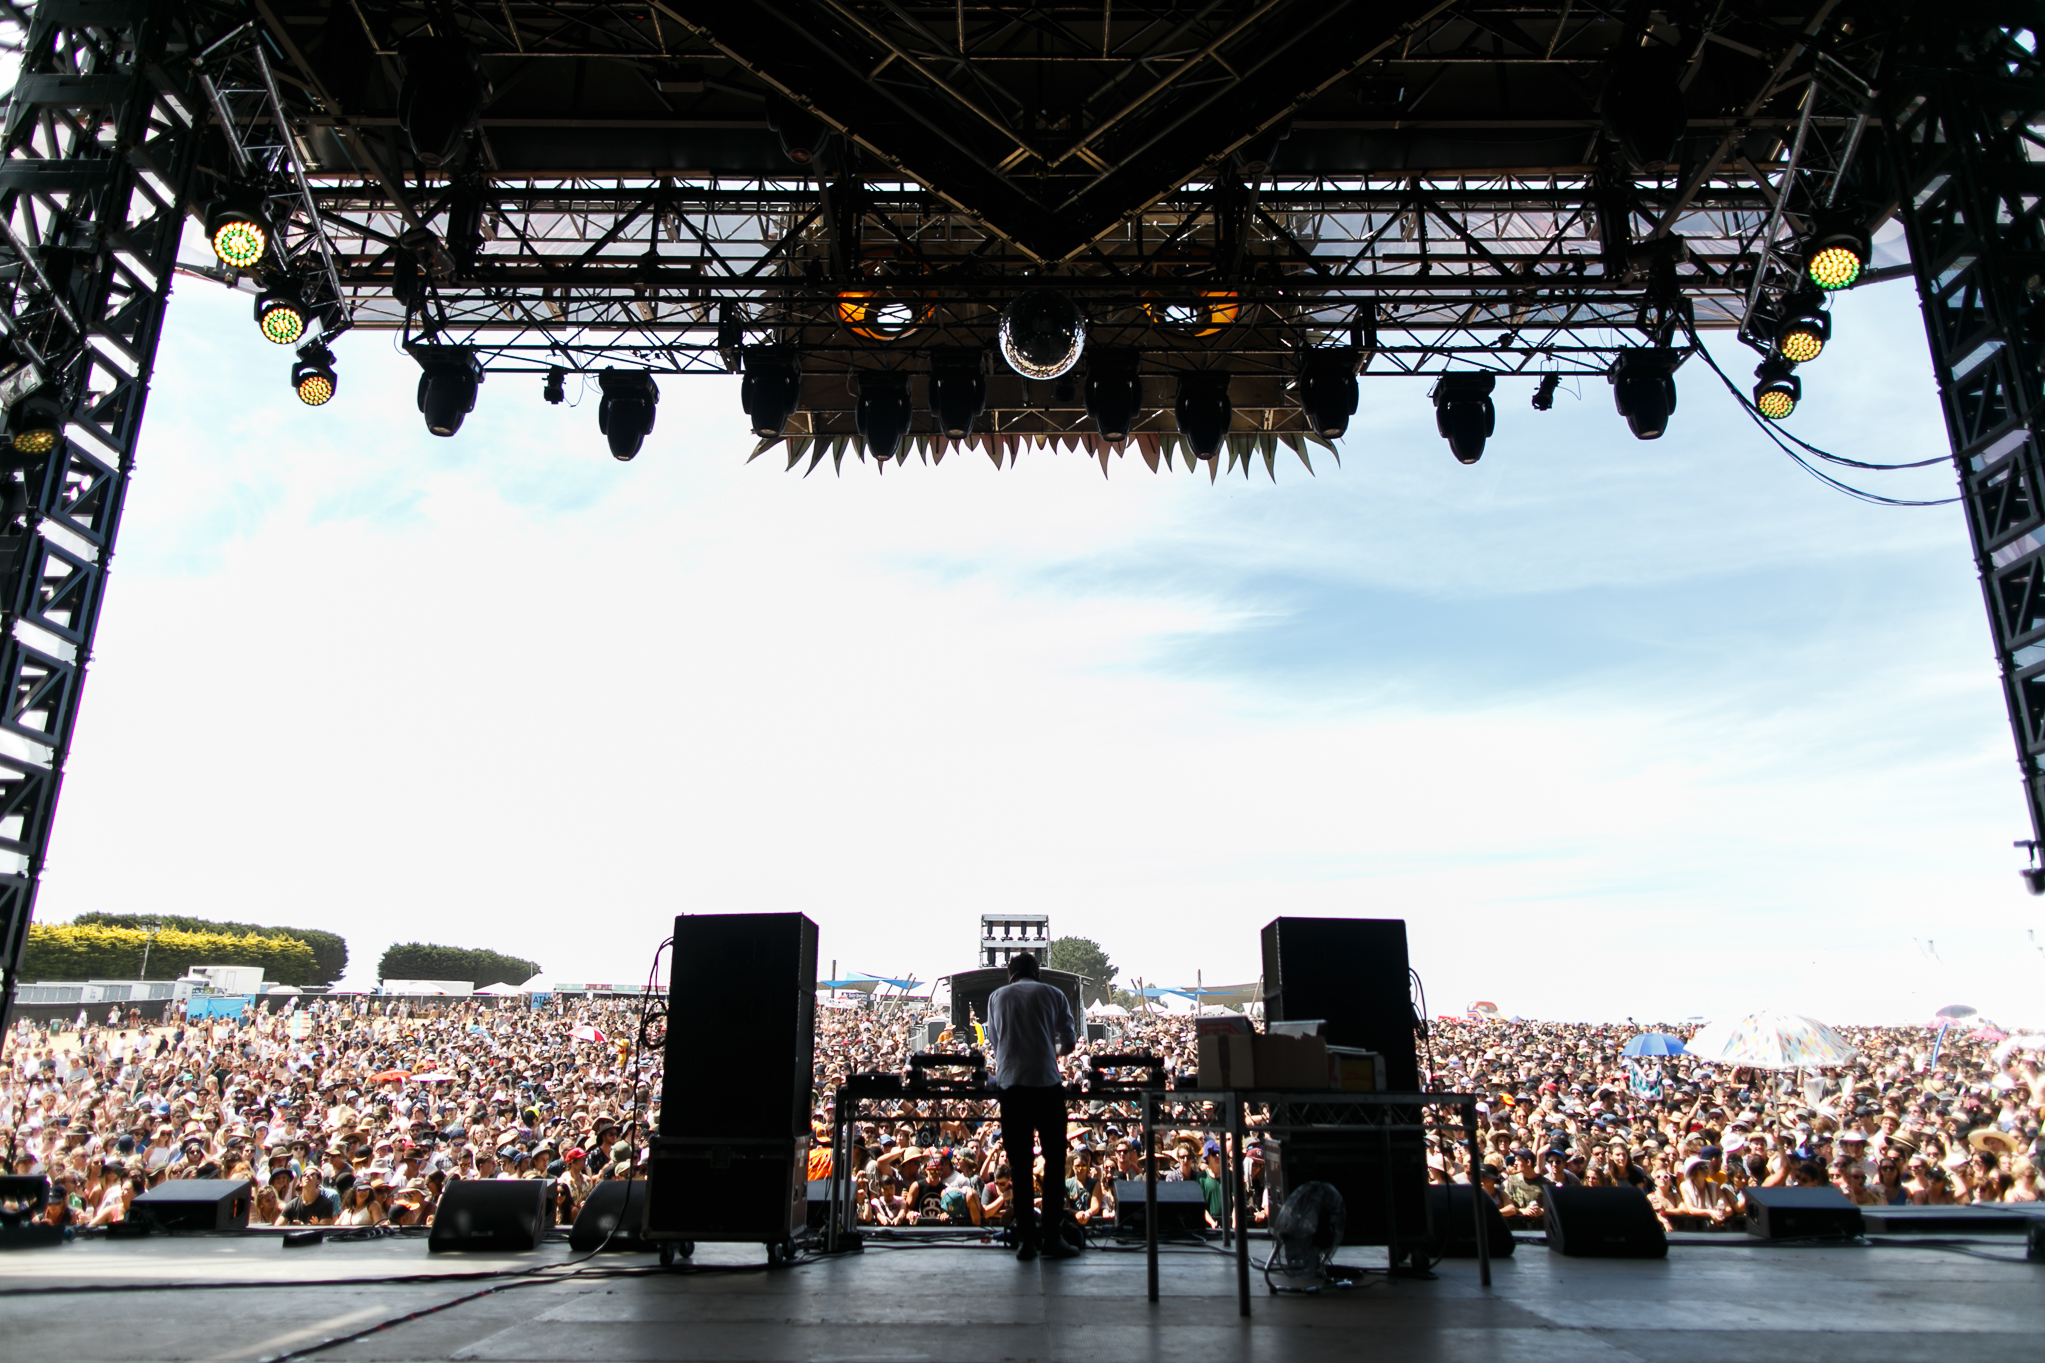 View out to the crowd from the stage at Beyond the Valley festival, Lardner Park, Australia